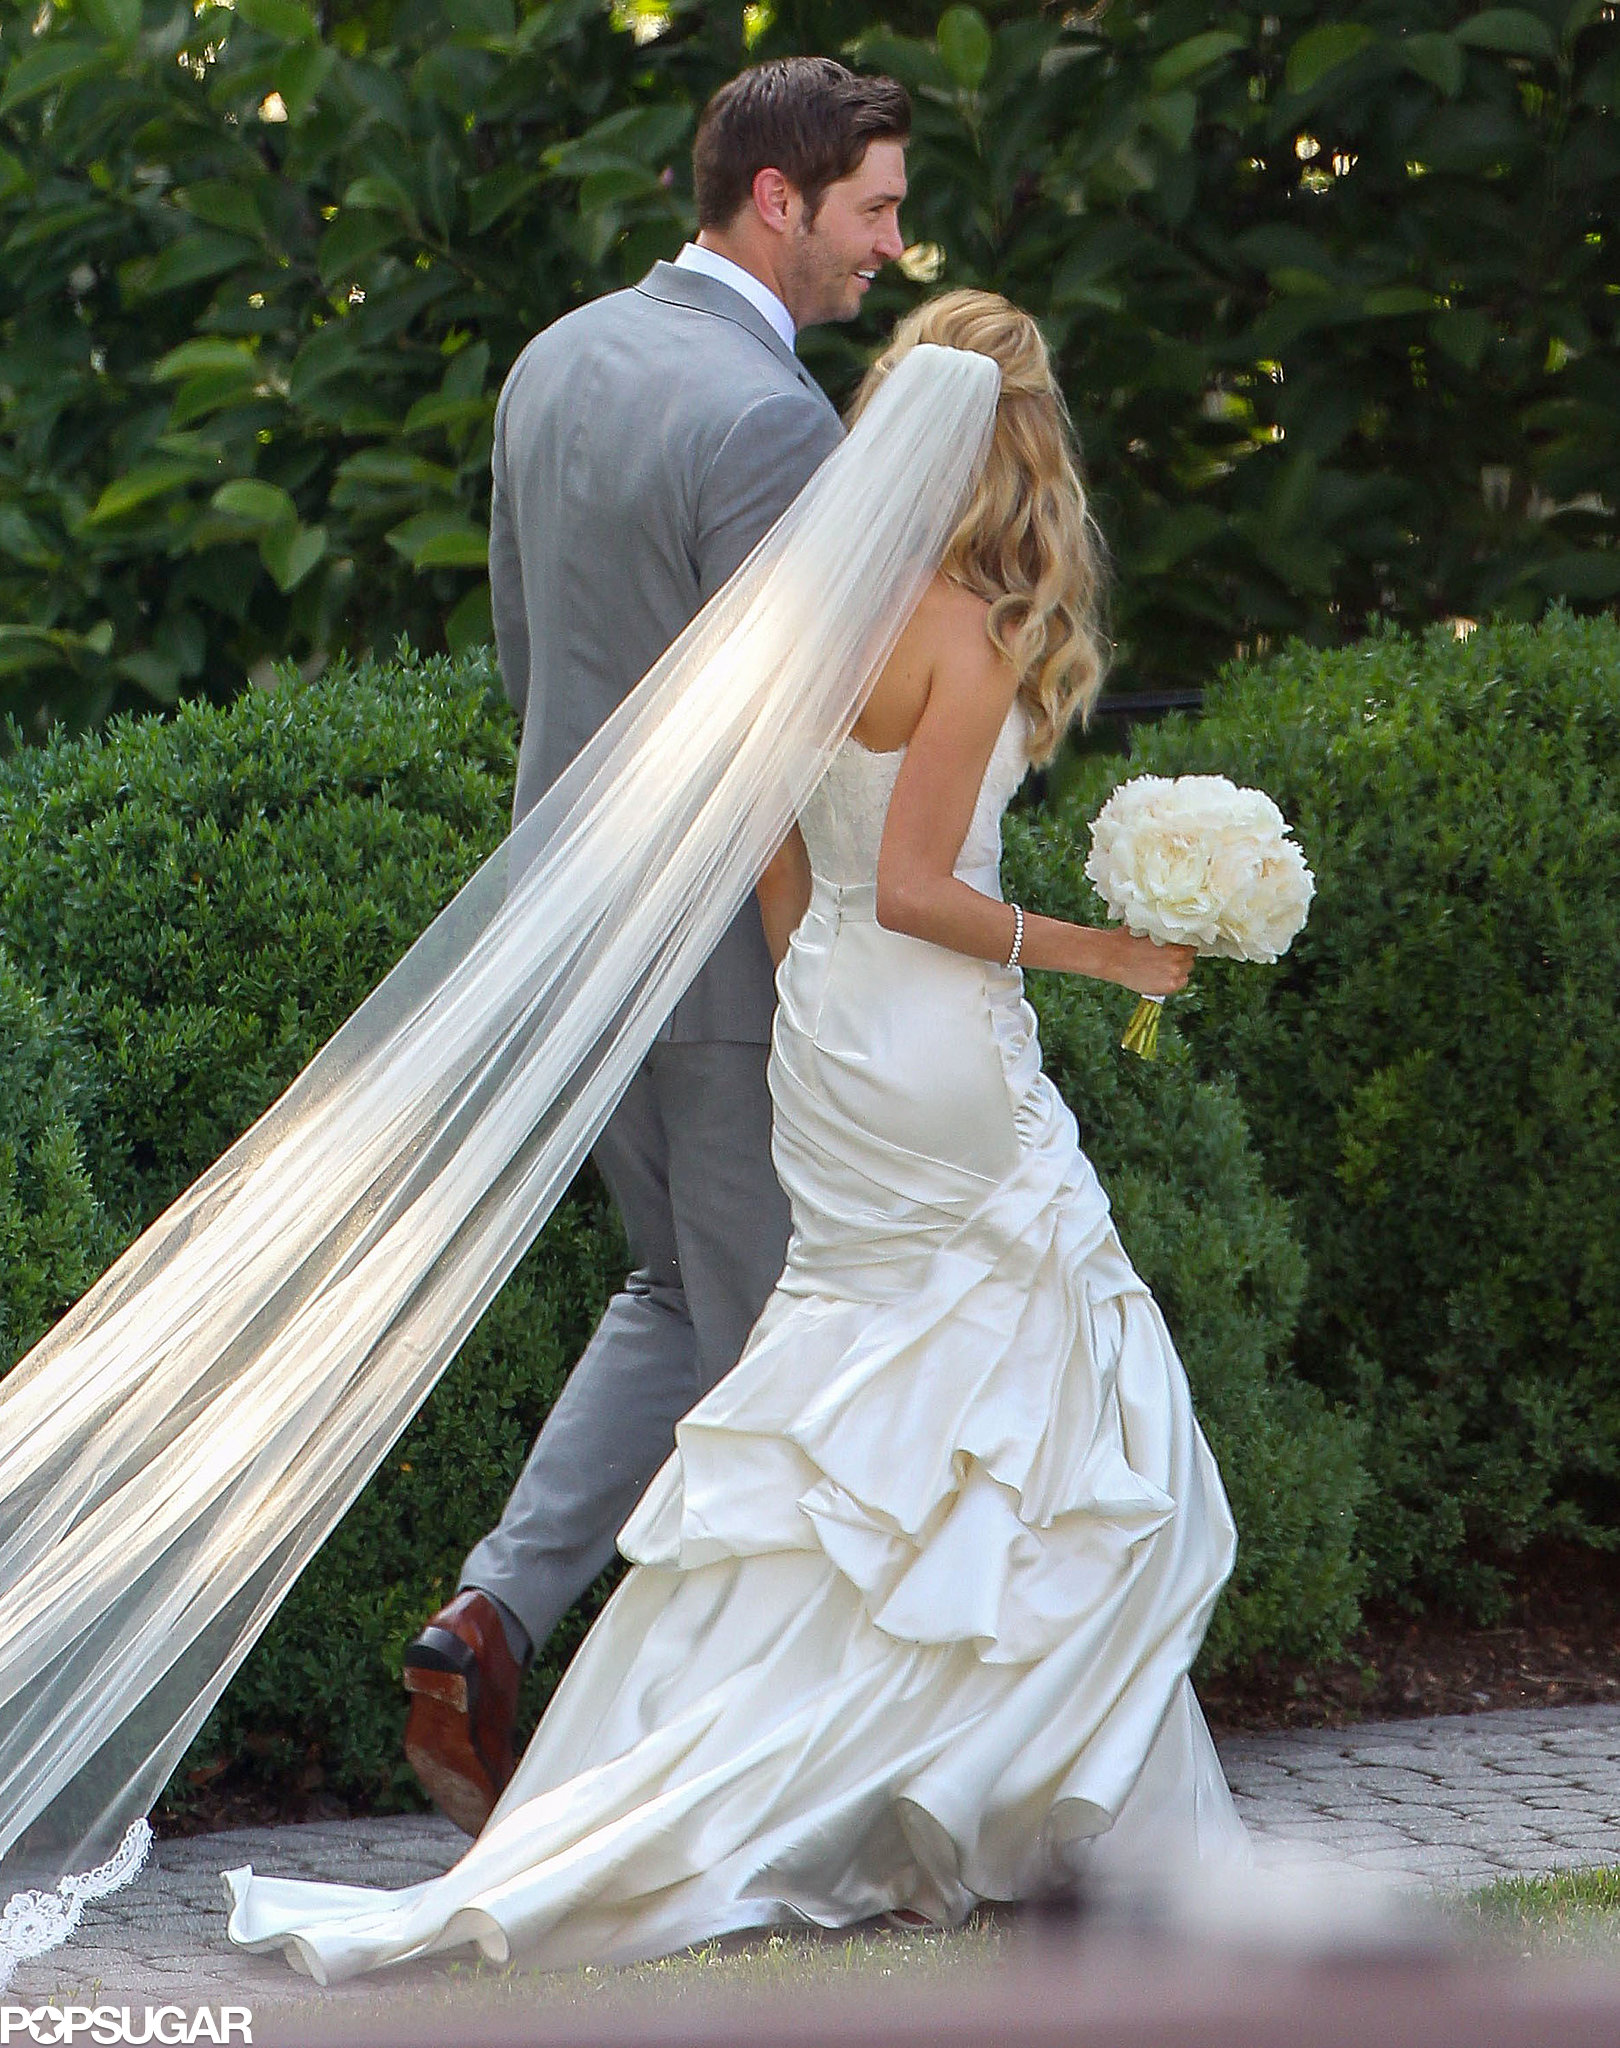 Kristin Cavallari made it official in June 2013 with Jay Cutler in Nashville, TN.